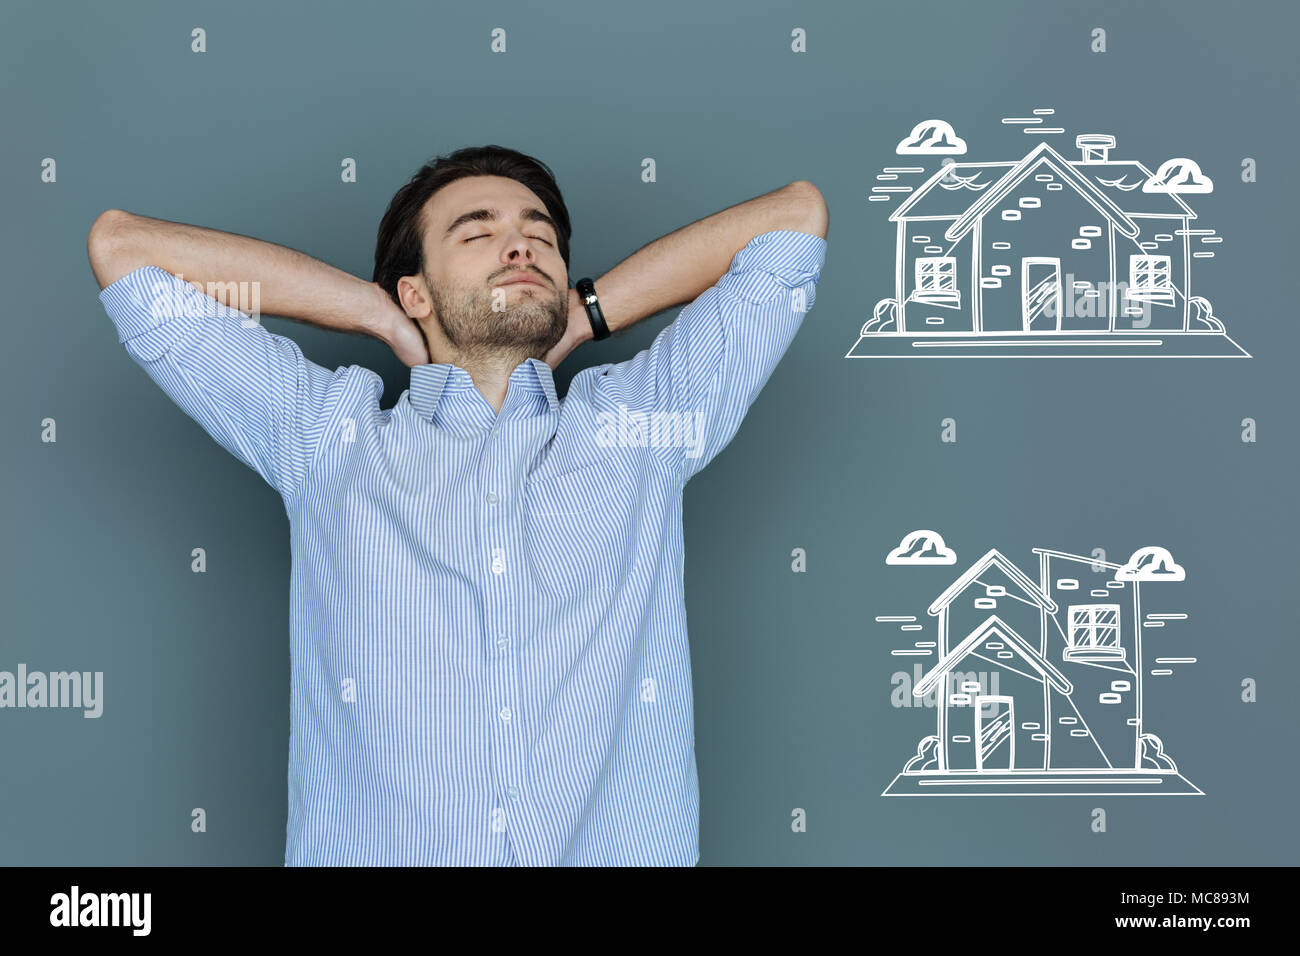 Ambitious student thinking about buying a house - Stock Image